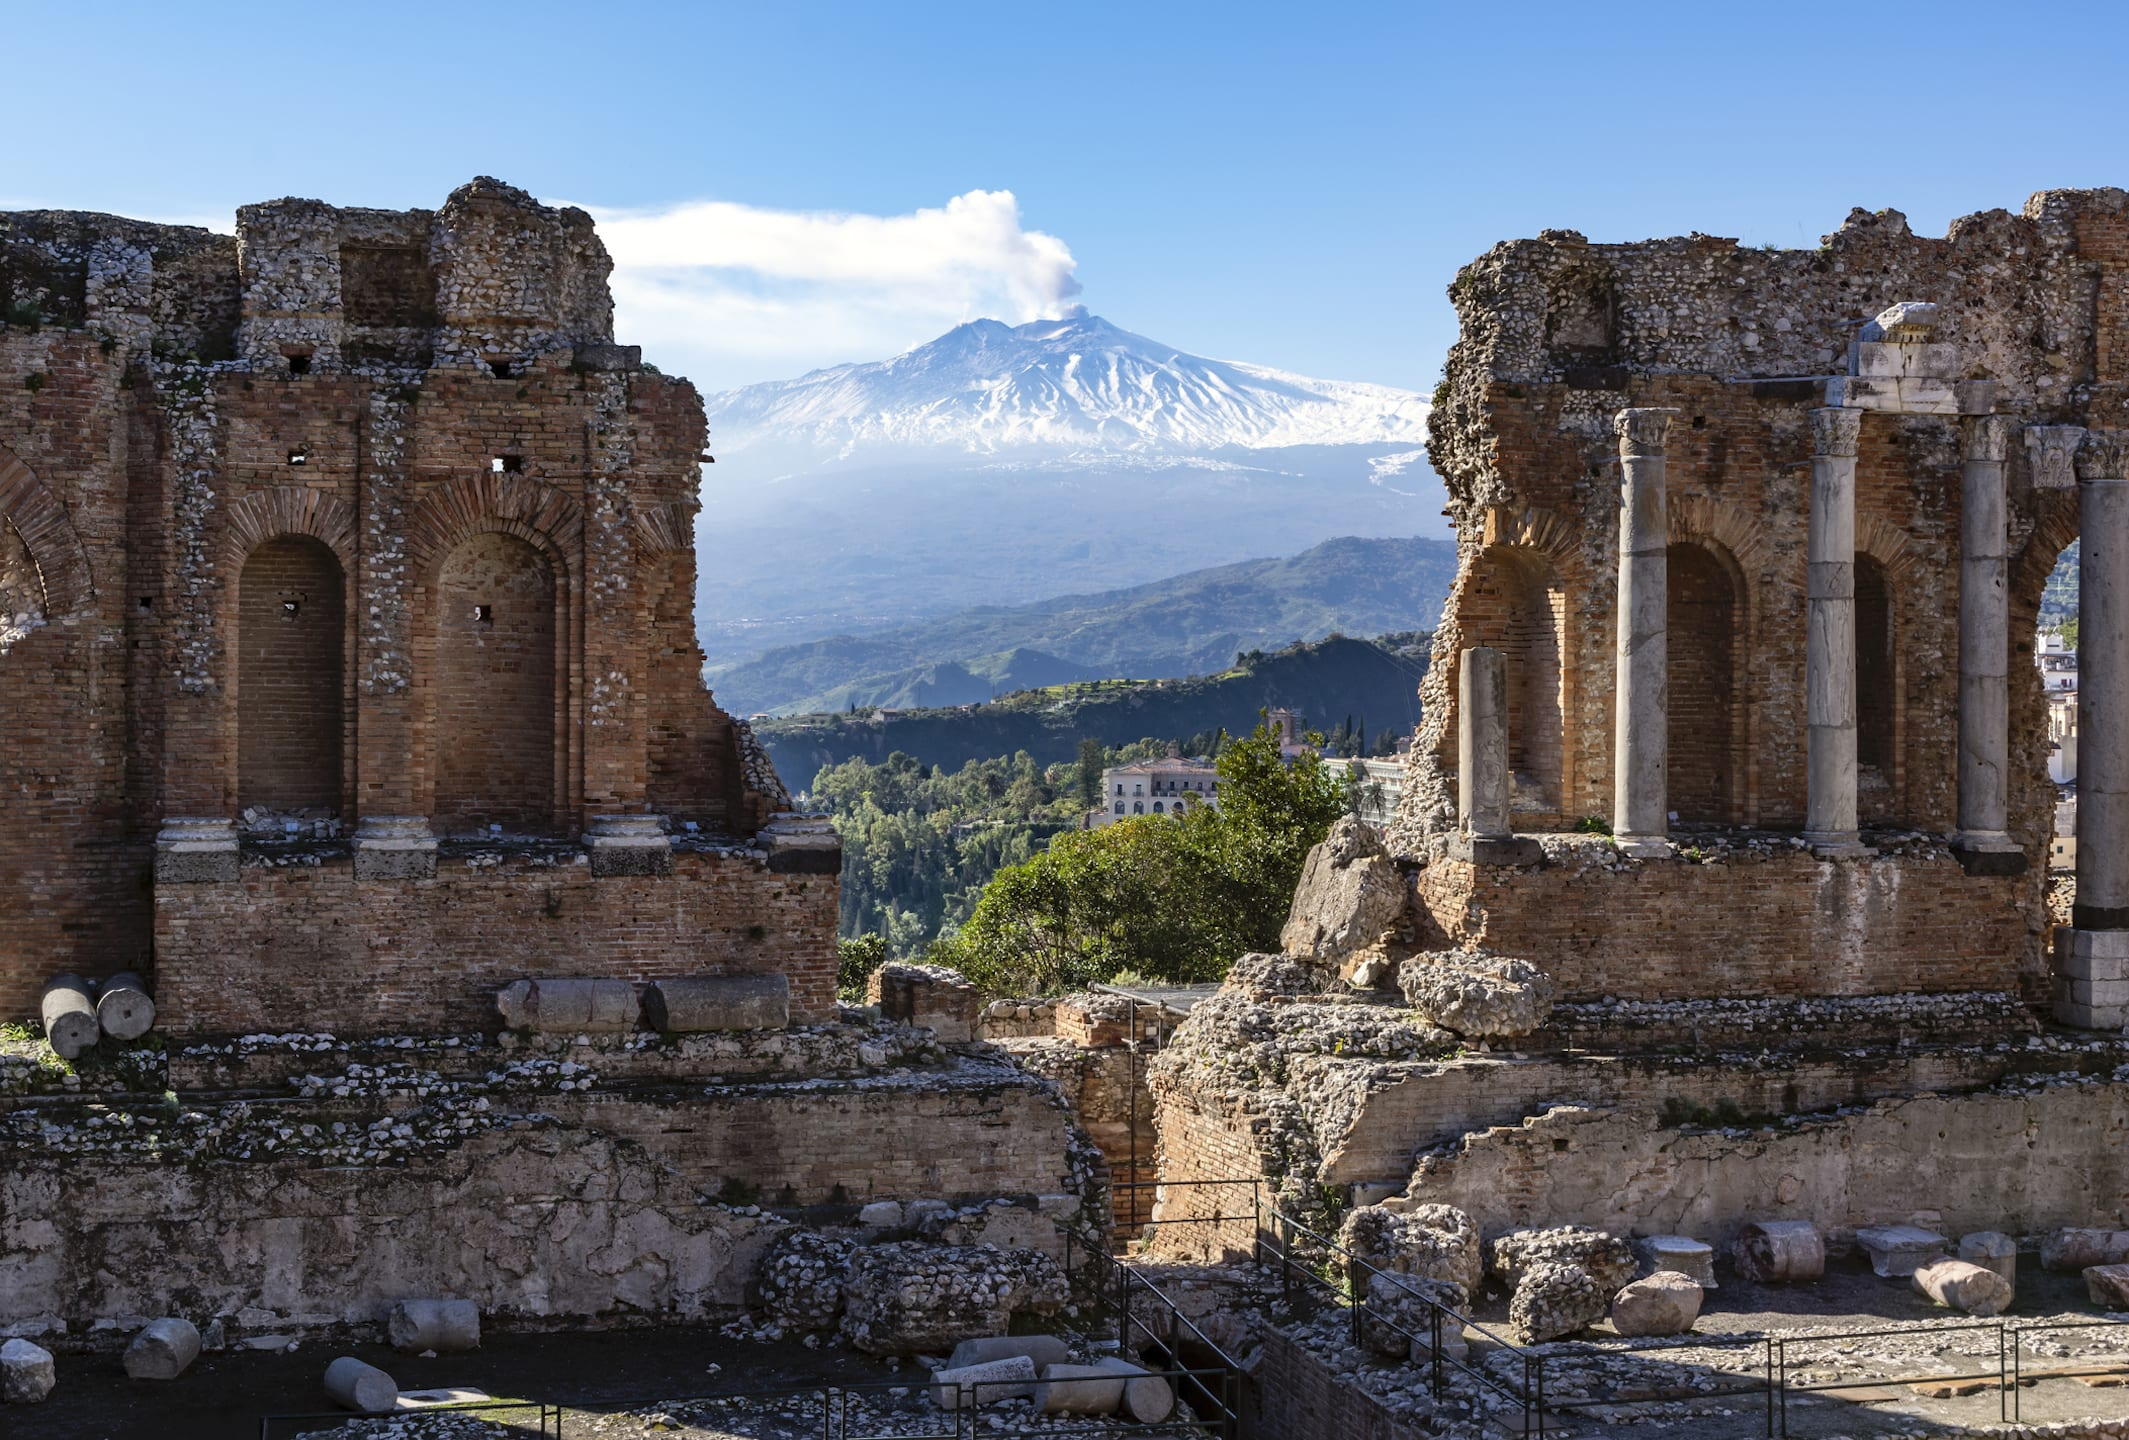 mt etna viewed though ruins